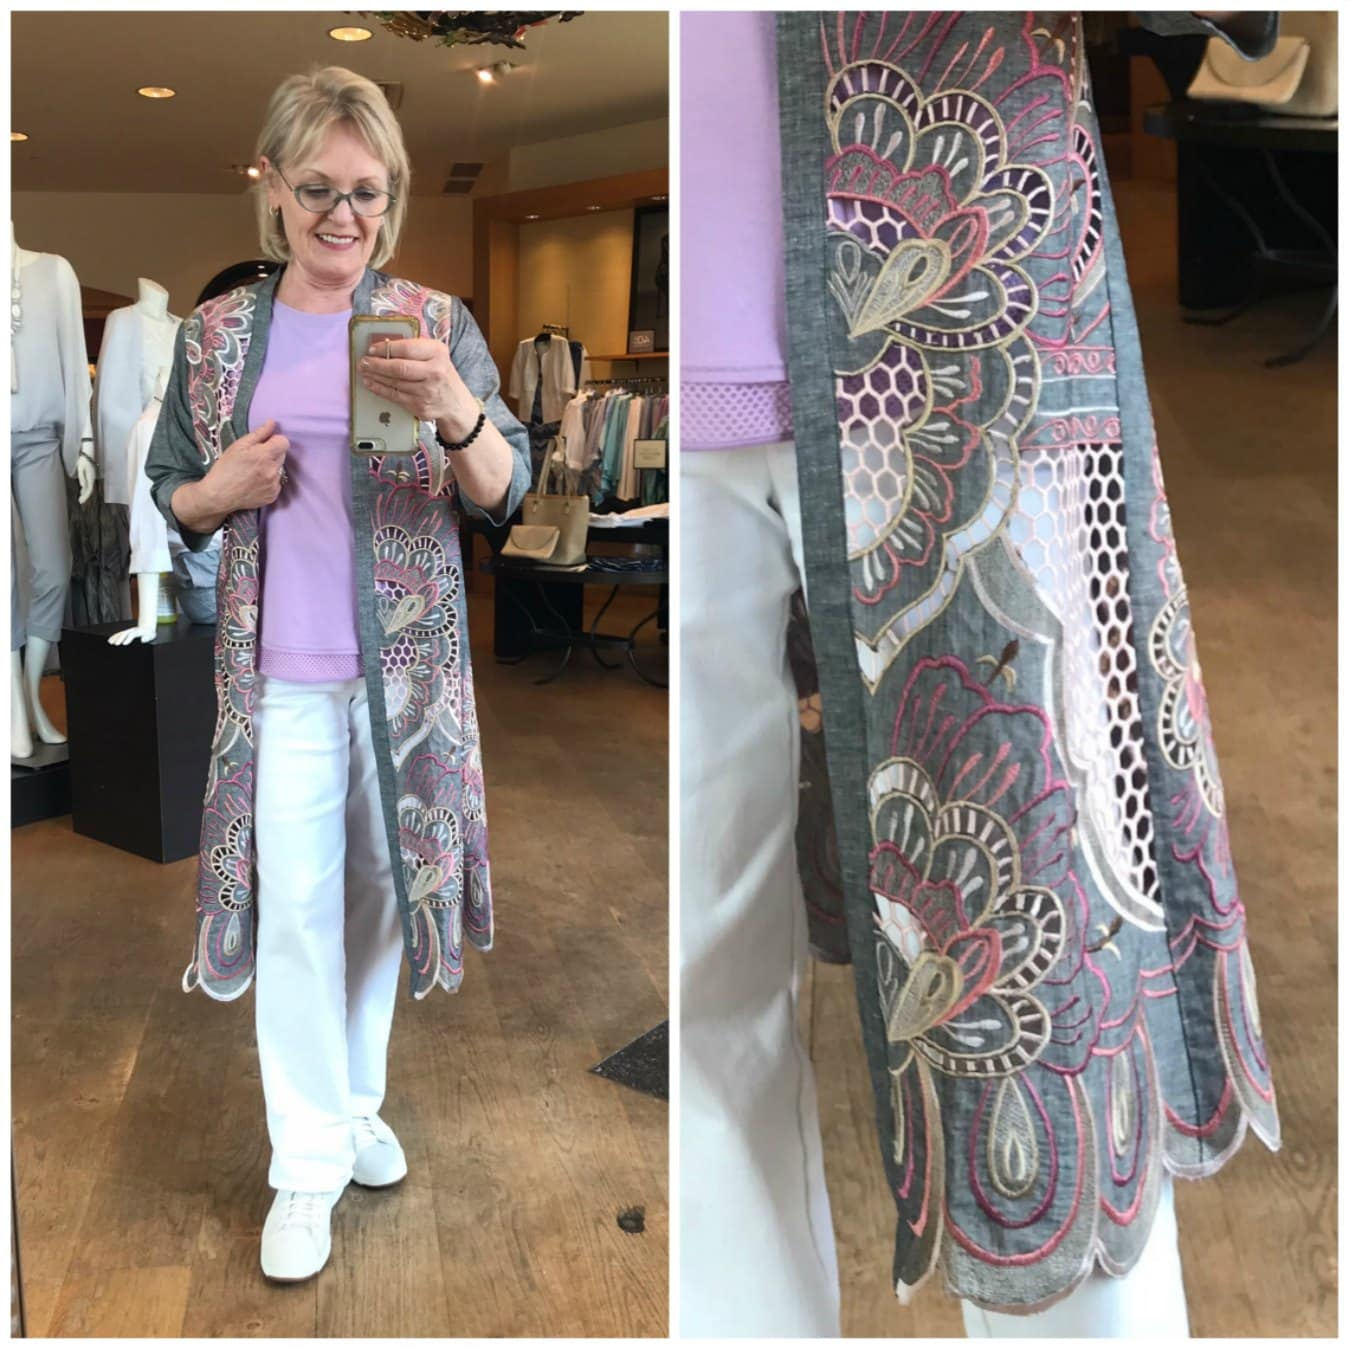 EMBRODERED SCALLOPED HEM KIMONO JACKET from chicos on jennifer connolly of A Well Styled Life